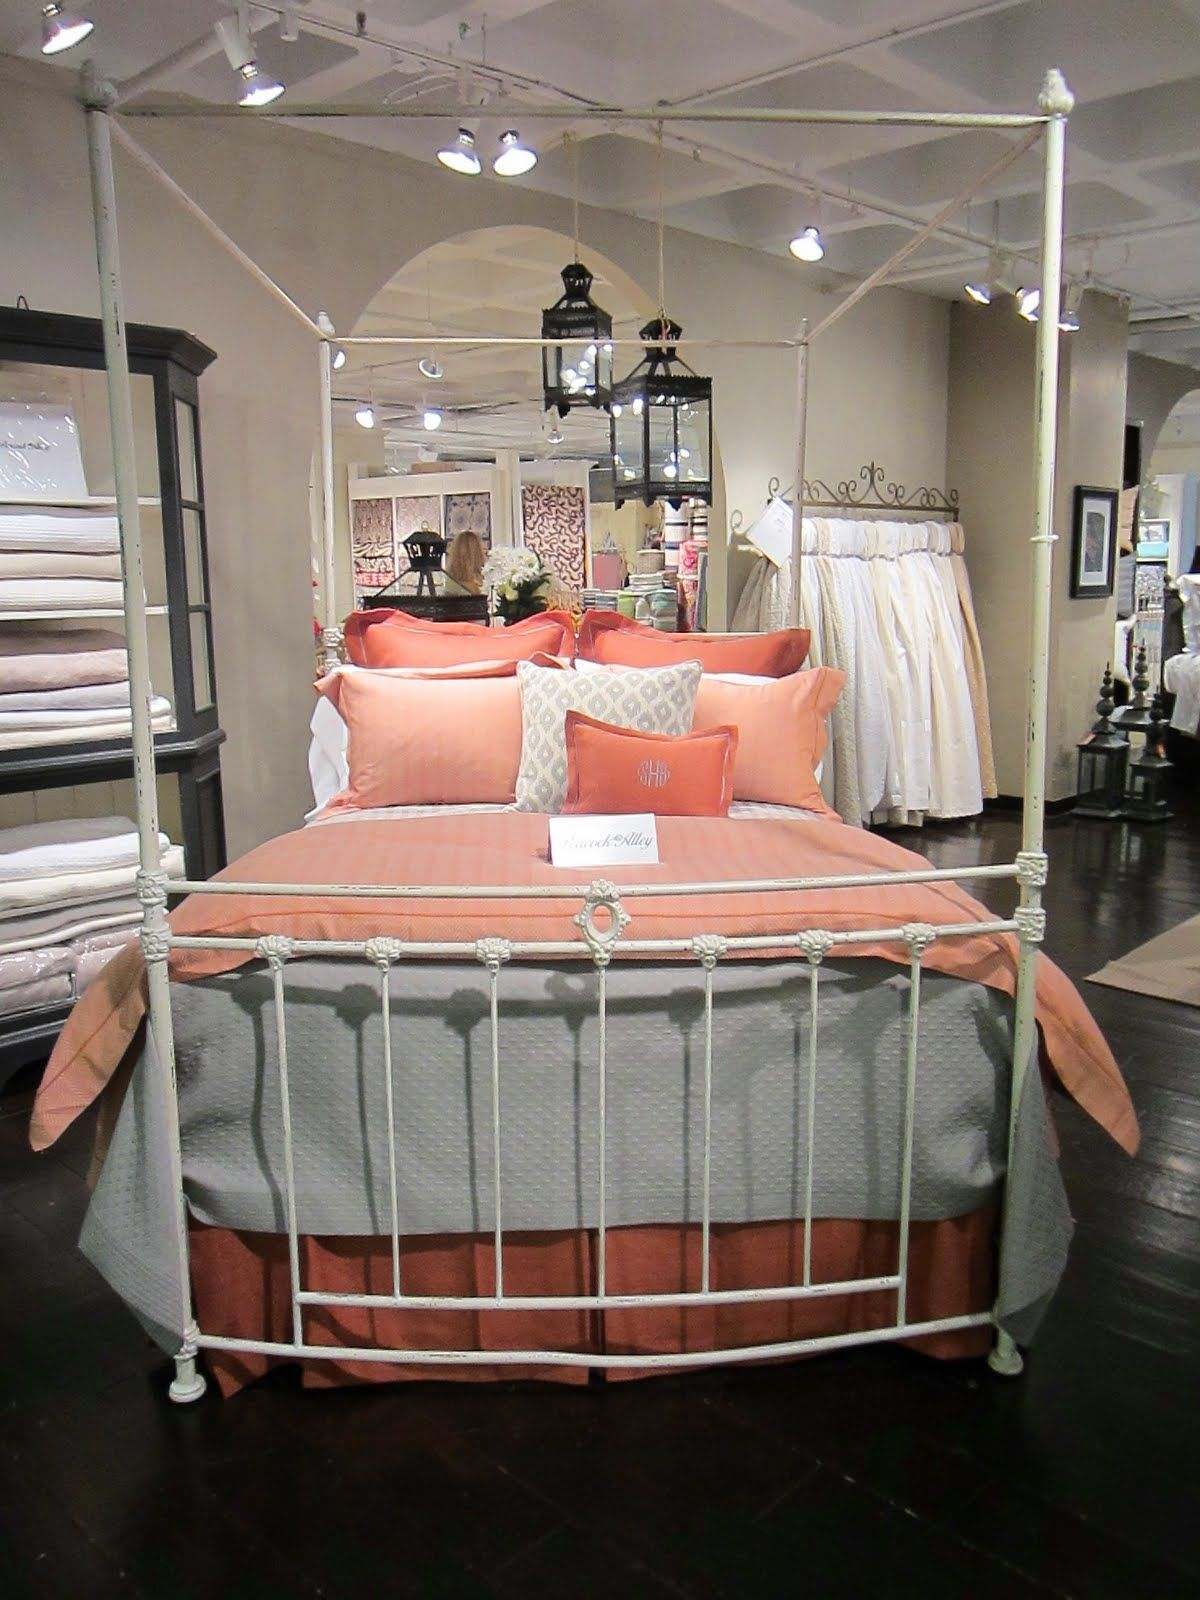 Iron Baby Bed